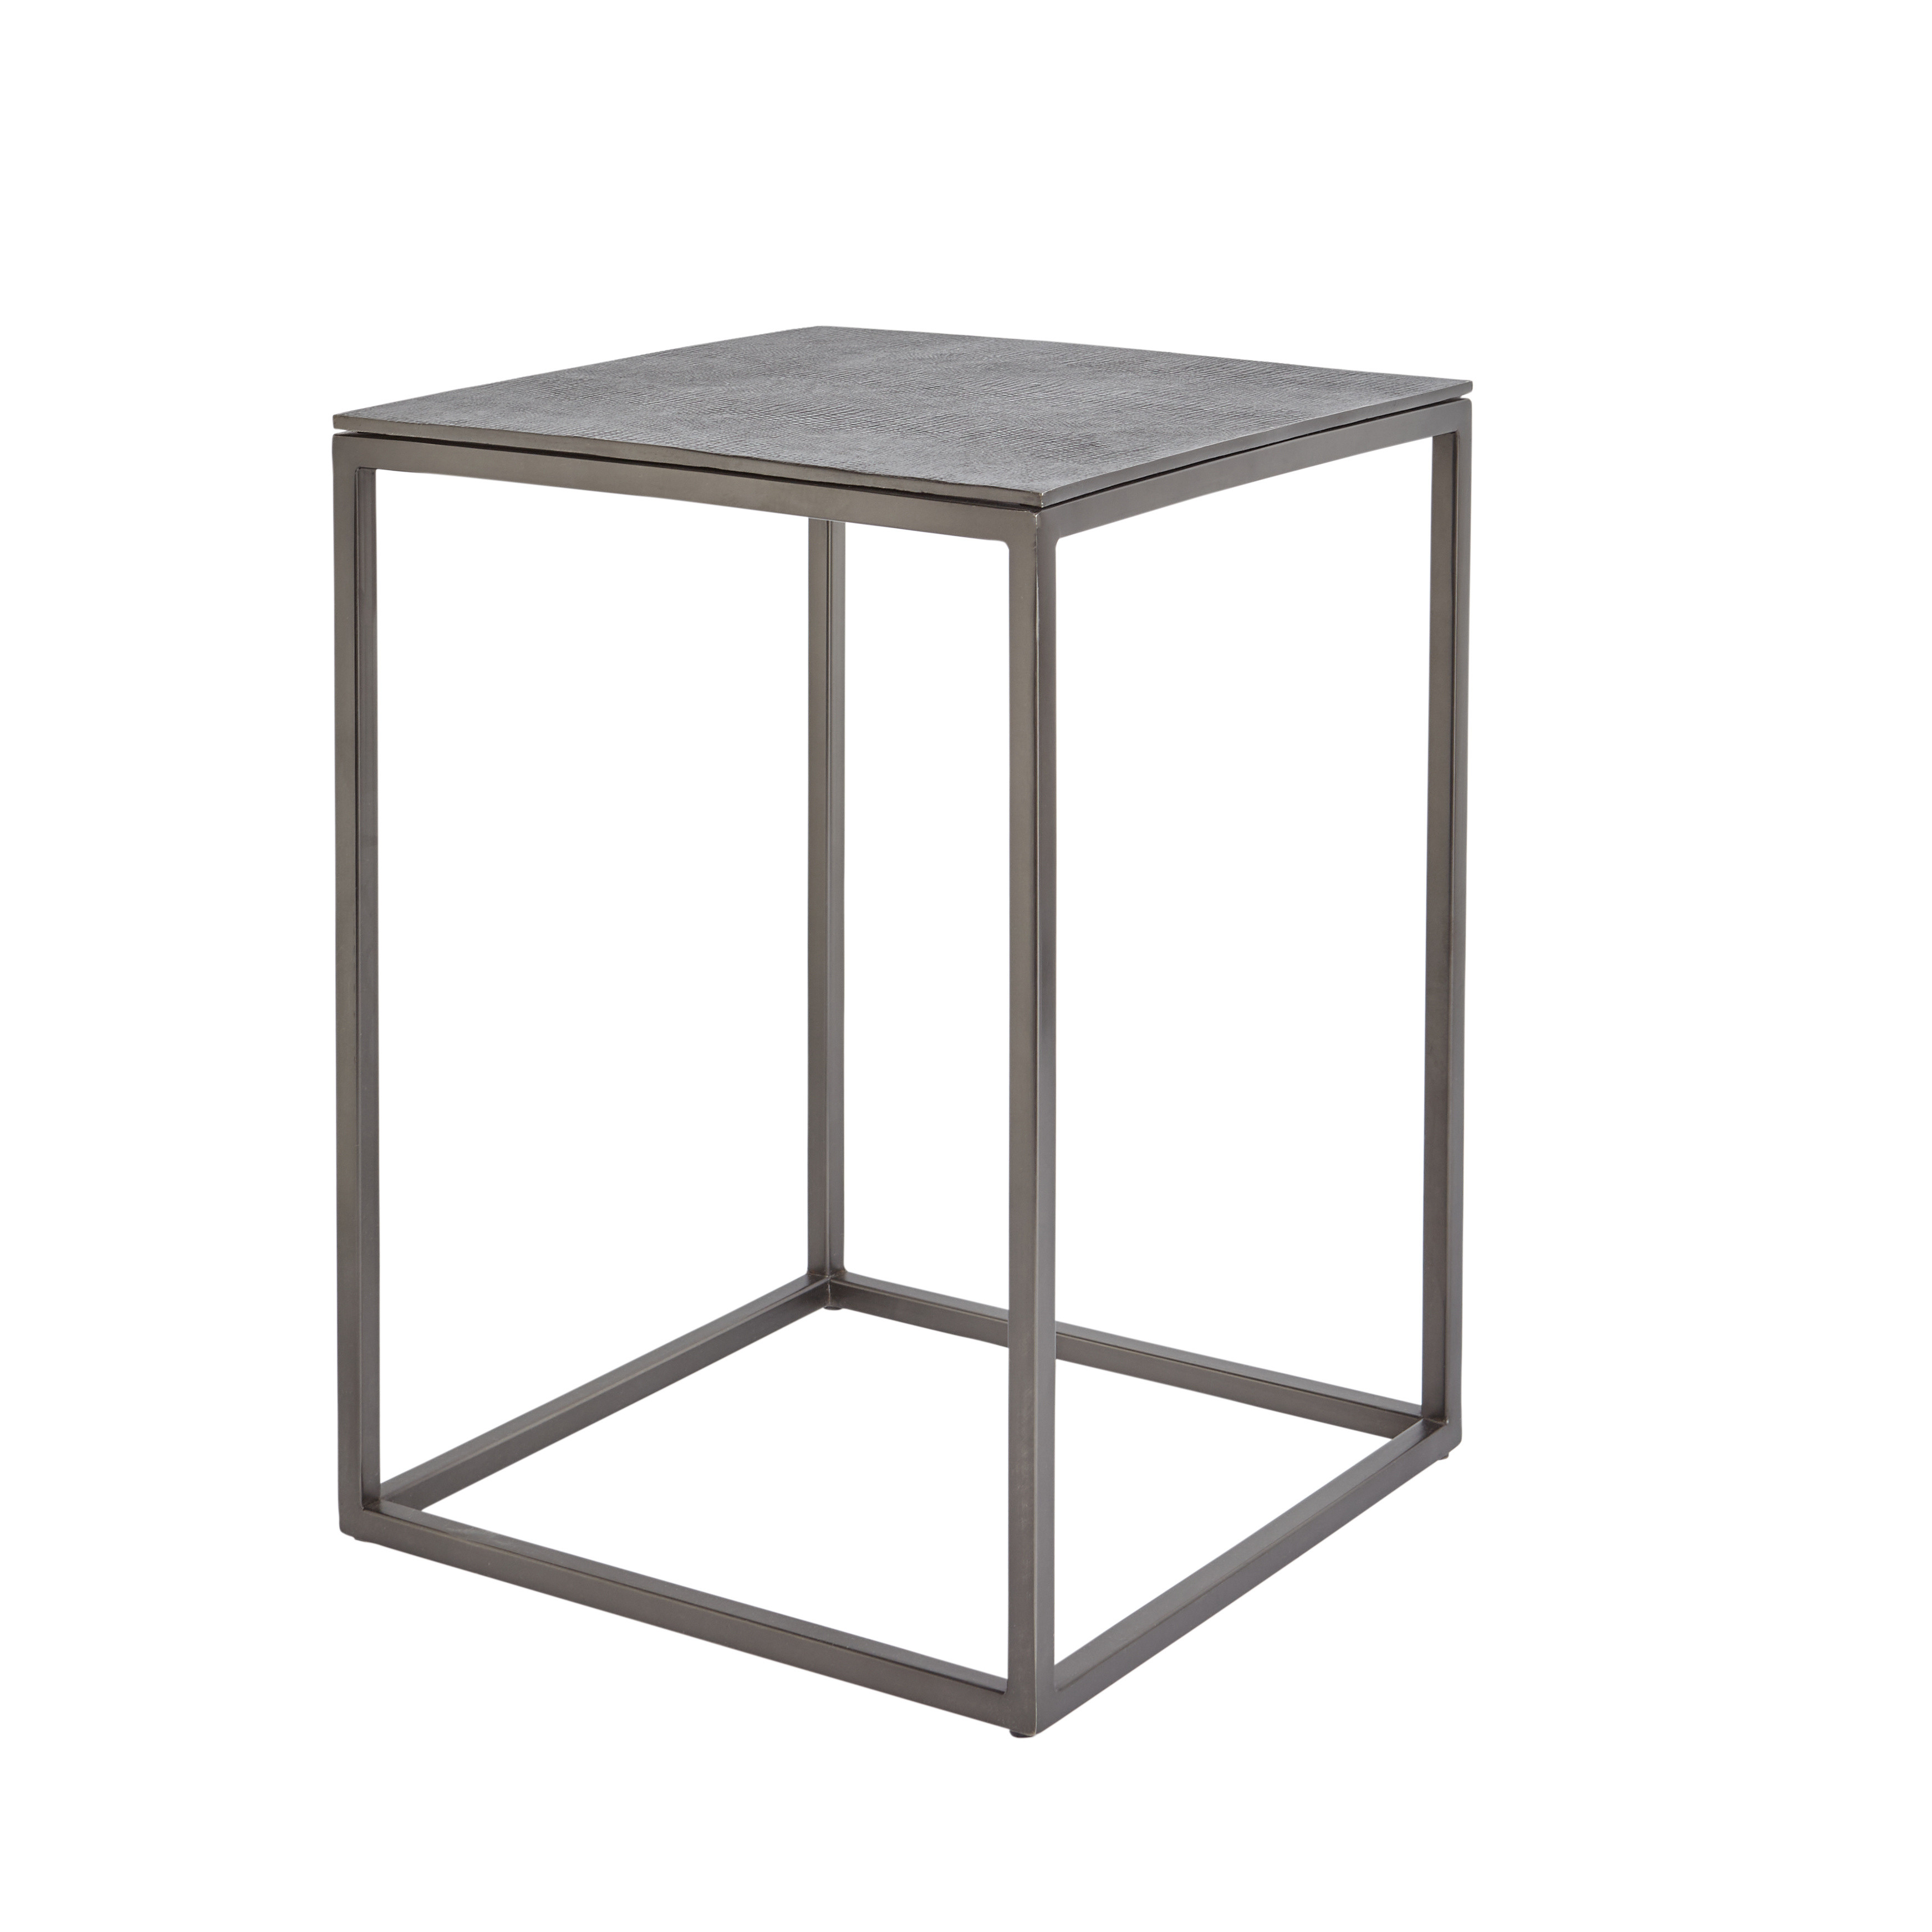 Coffee table in metallo cromato Snake, Grigio scuro, large image number 0